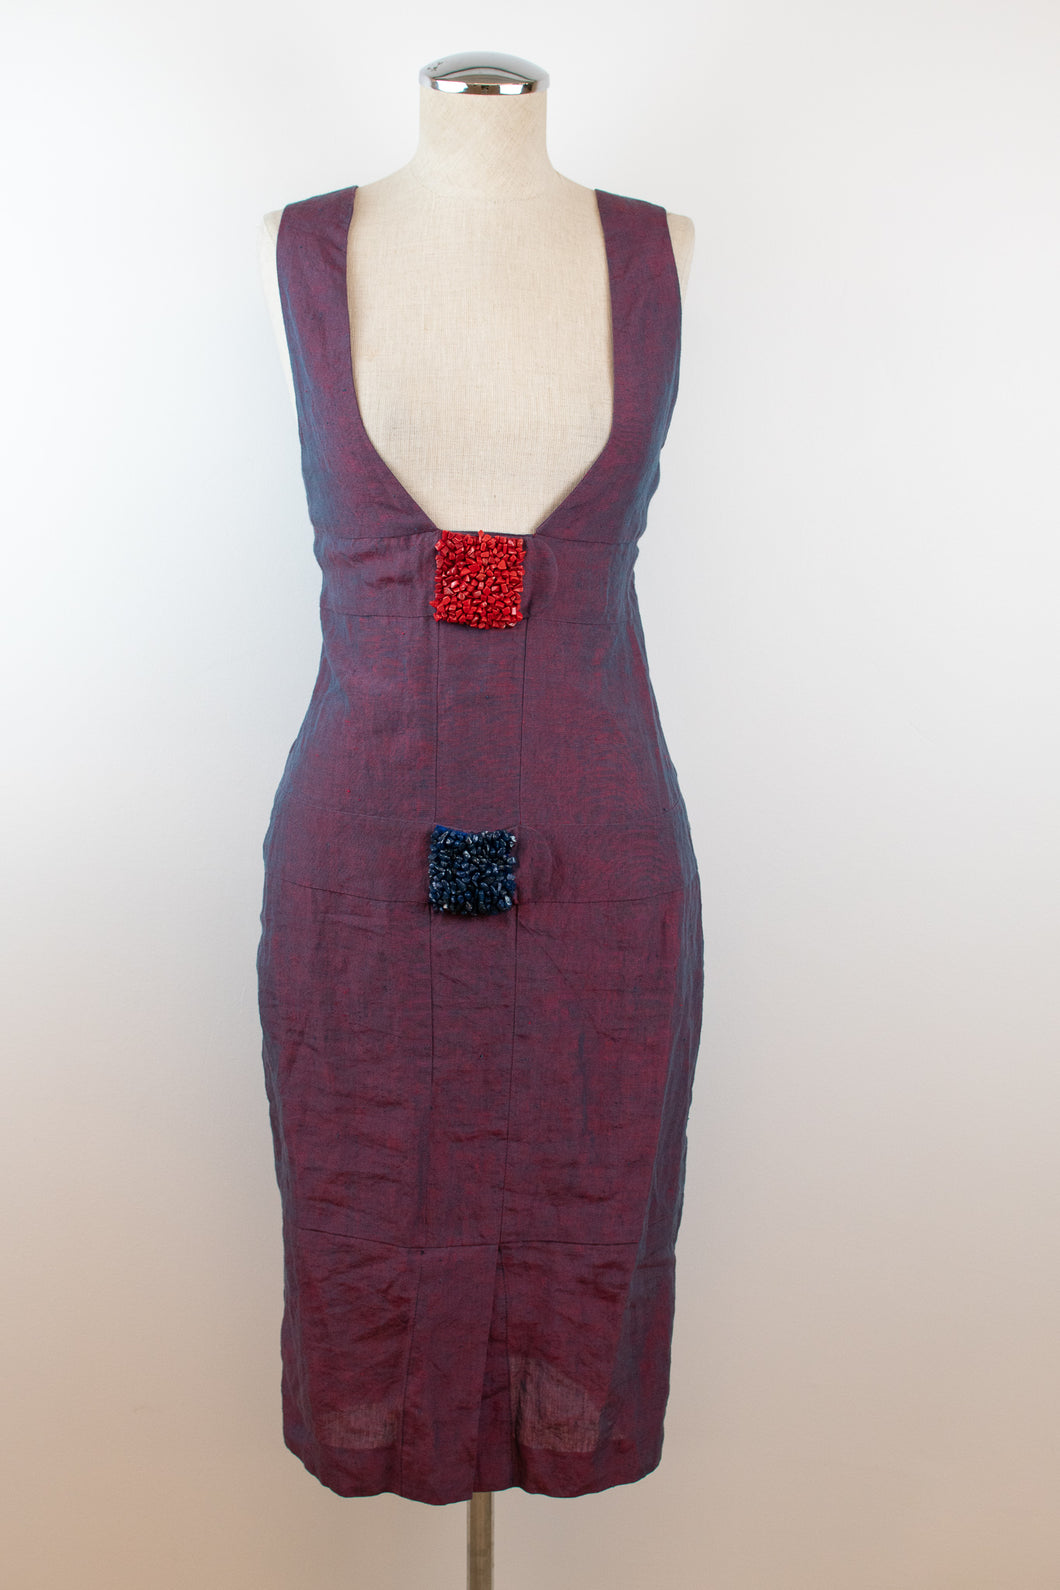 Y2K | Fendi | Purple Linen Dress with Beaded Details